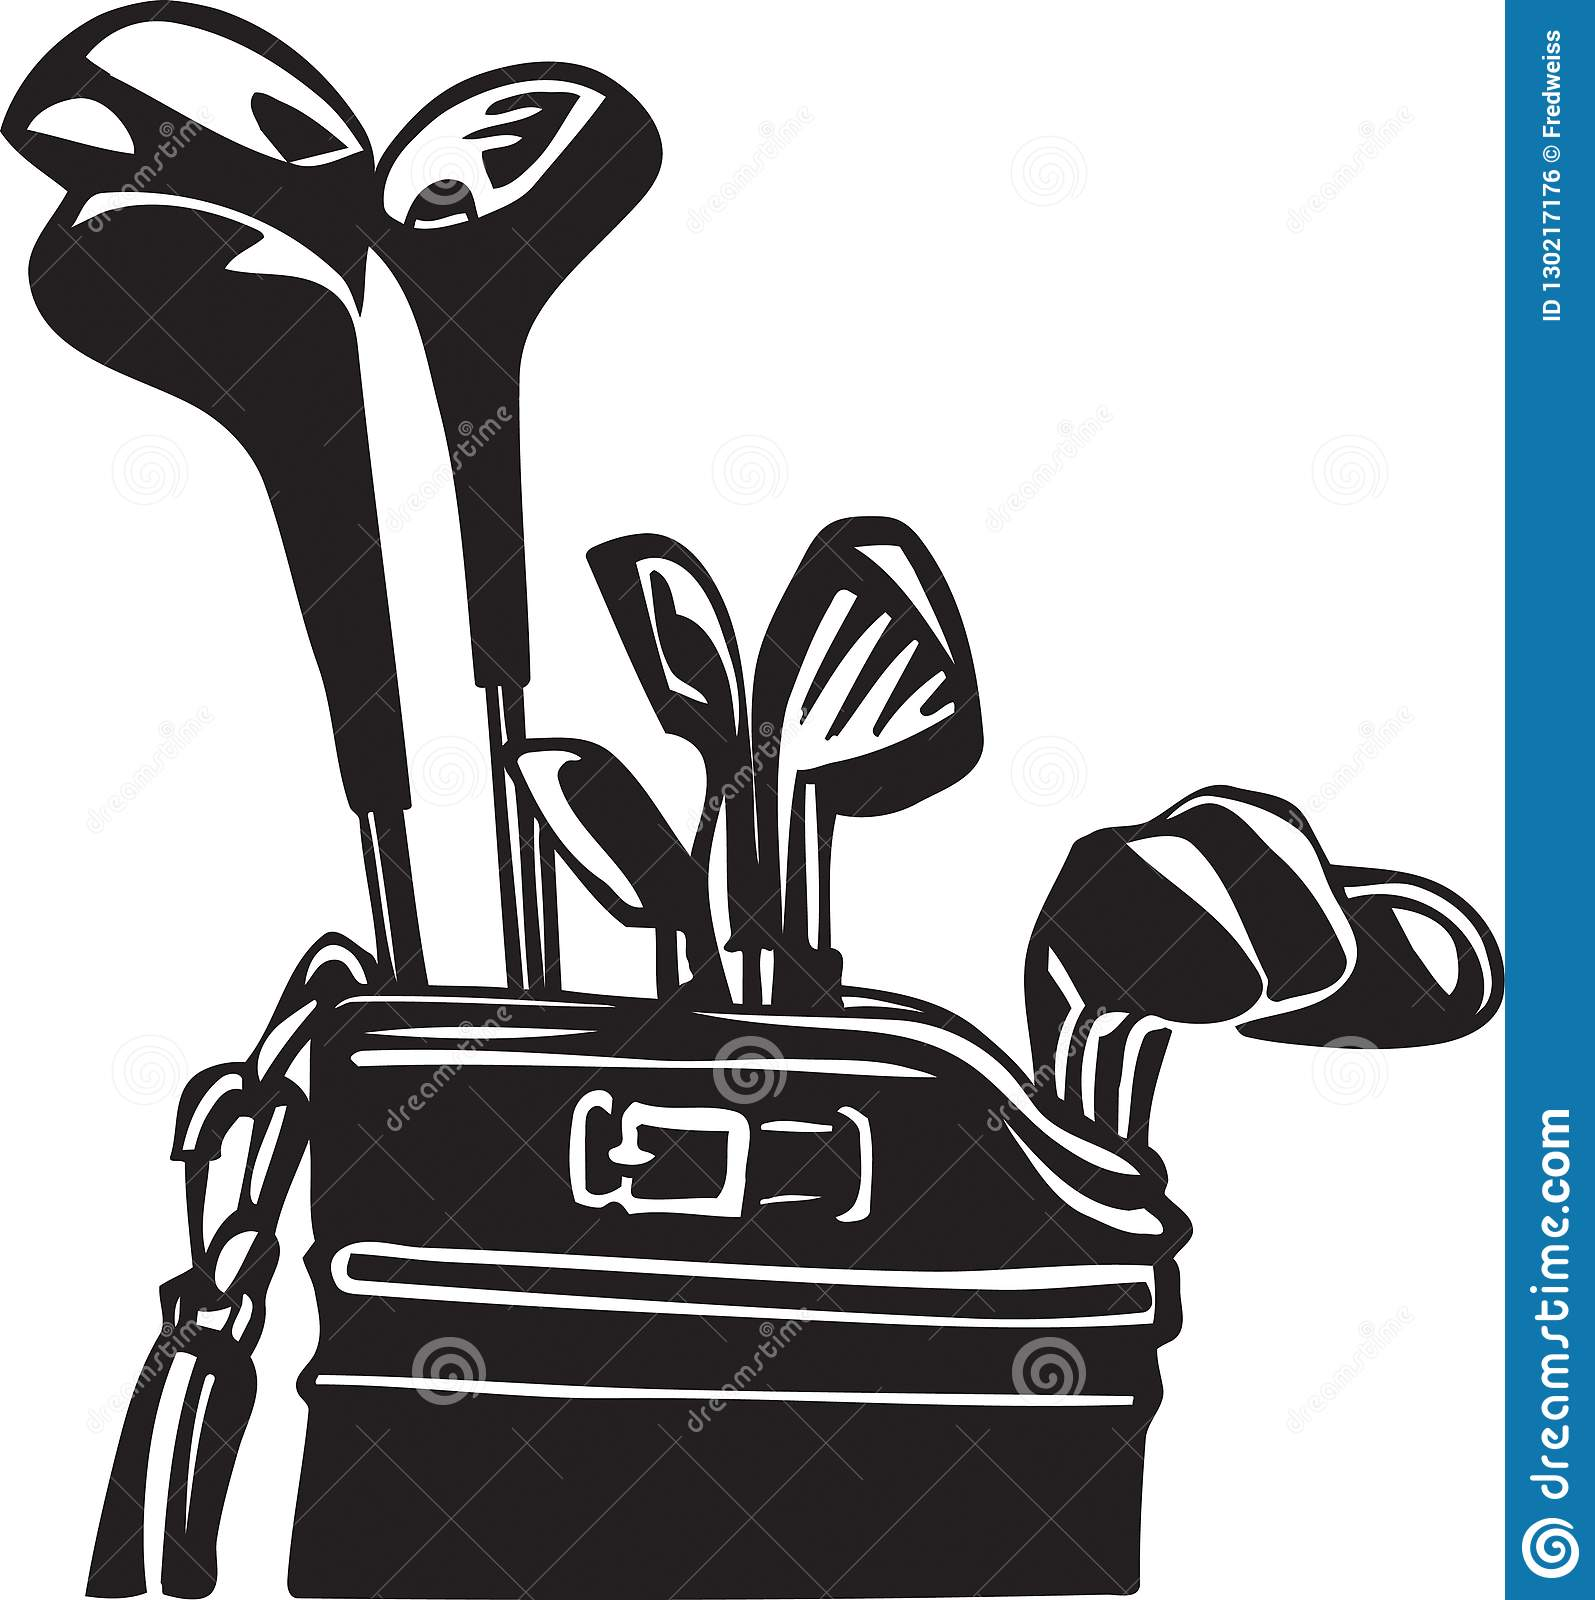 Black And White Golf Clubs And Bag Illustration Stock Vector Illustration Of Equipment Ball 130217176